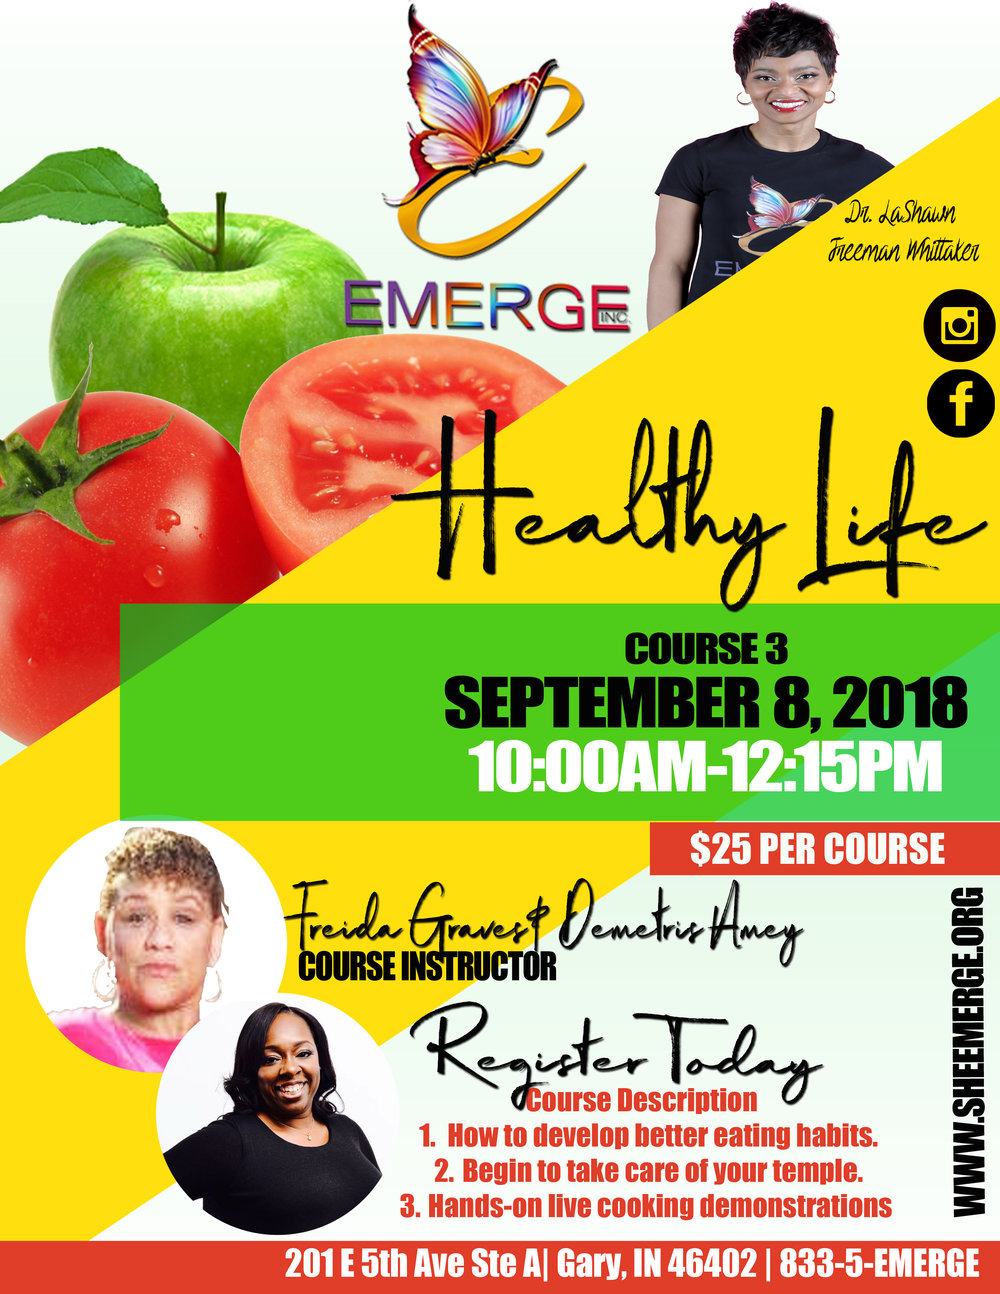 Course 3: A Healthy Life 2 - Session Start Date: September 8, 2018Course Description: Good Habits, Bad Food, ExercisePresenter: Freida Graves & Demetris AmeyTime: 10:00am-12:15pmLocation: 201 E 5th Ave Ste D